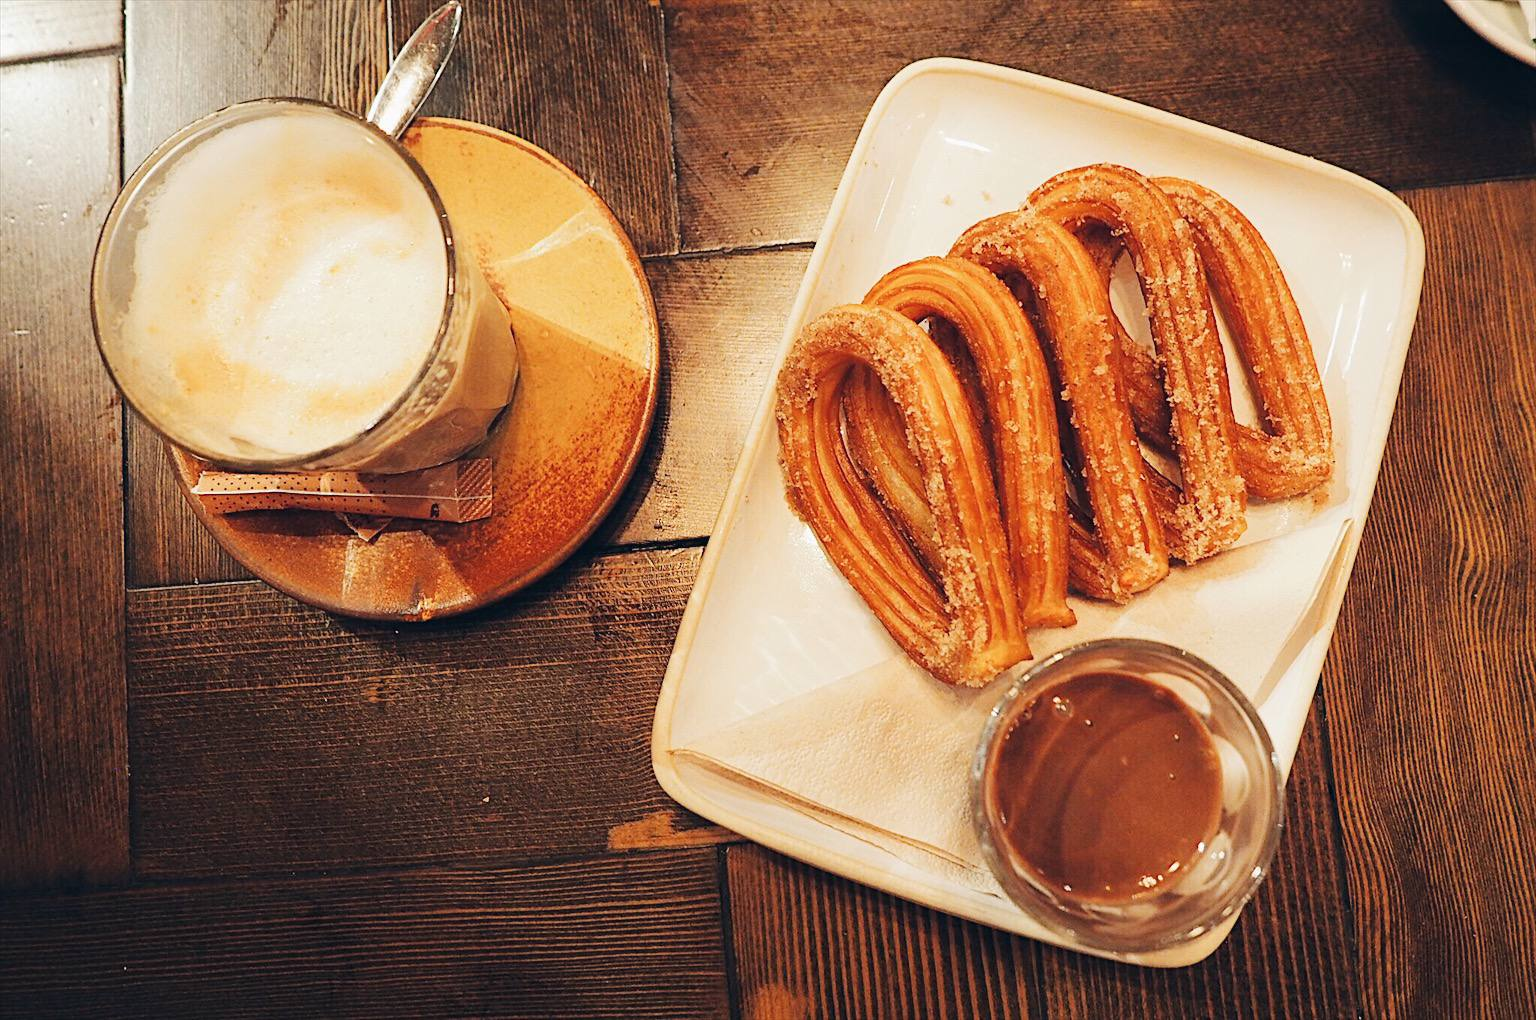 Where to get churros in Newcastle